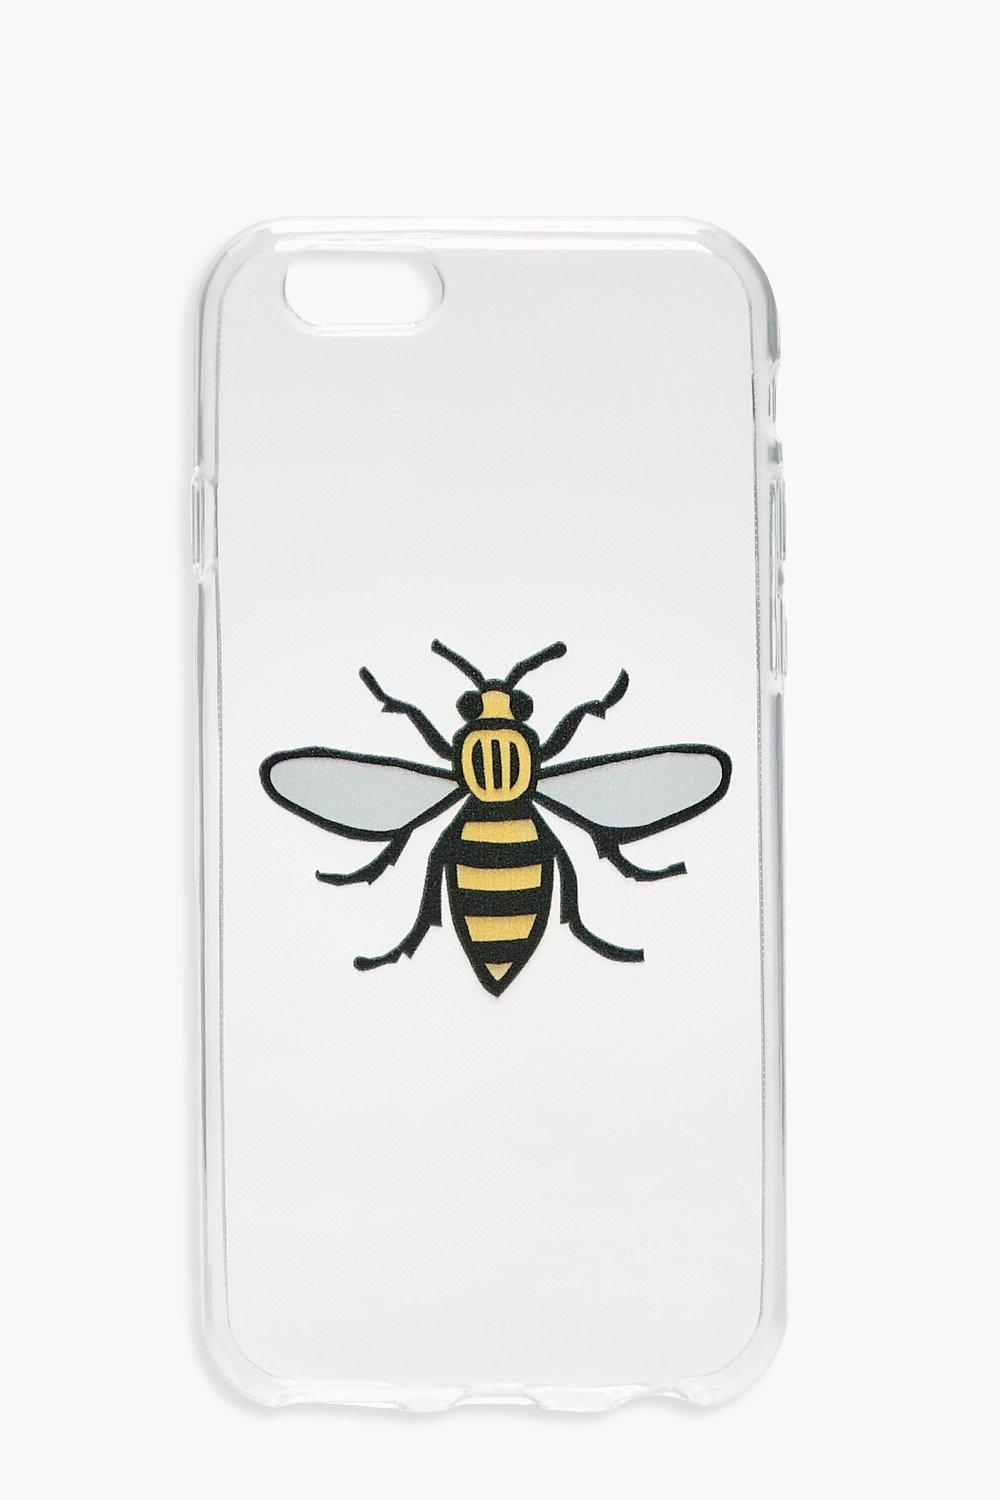 iPhone 6 Case Bee - white - Charity iPhone 6 Case